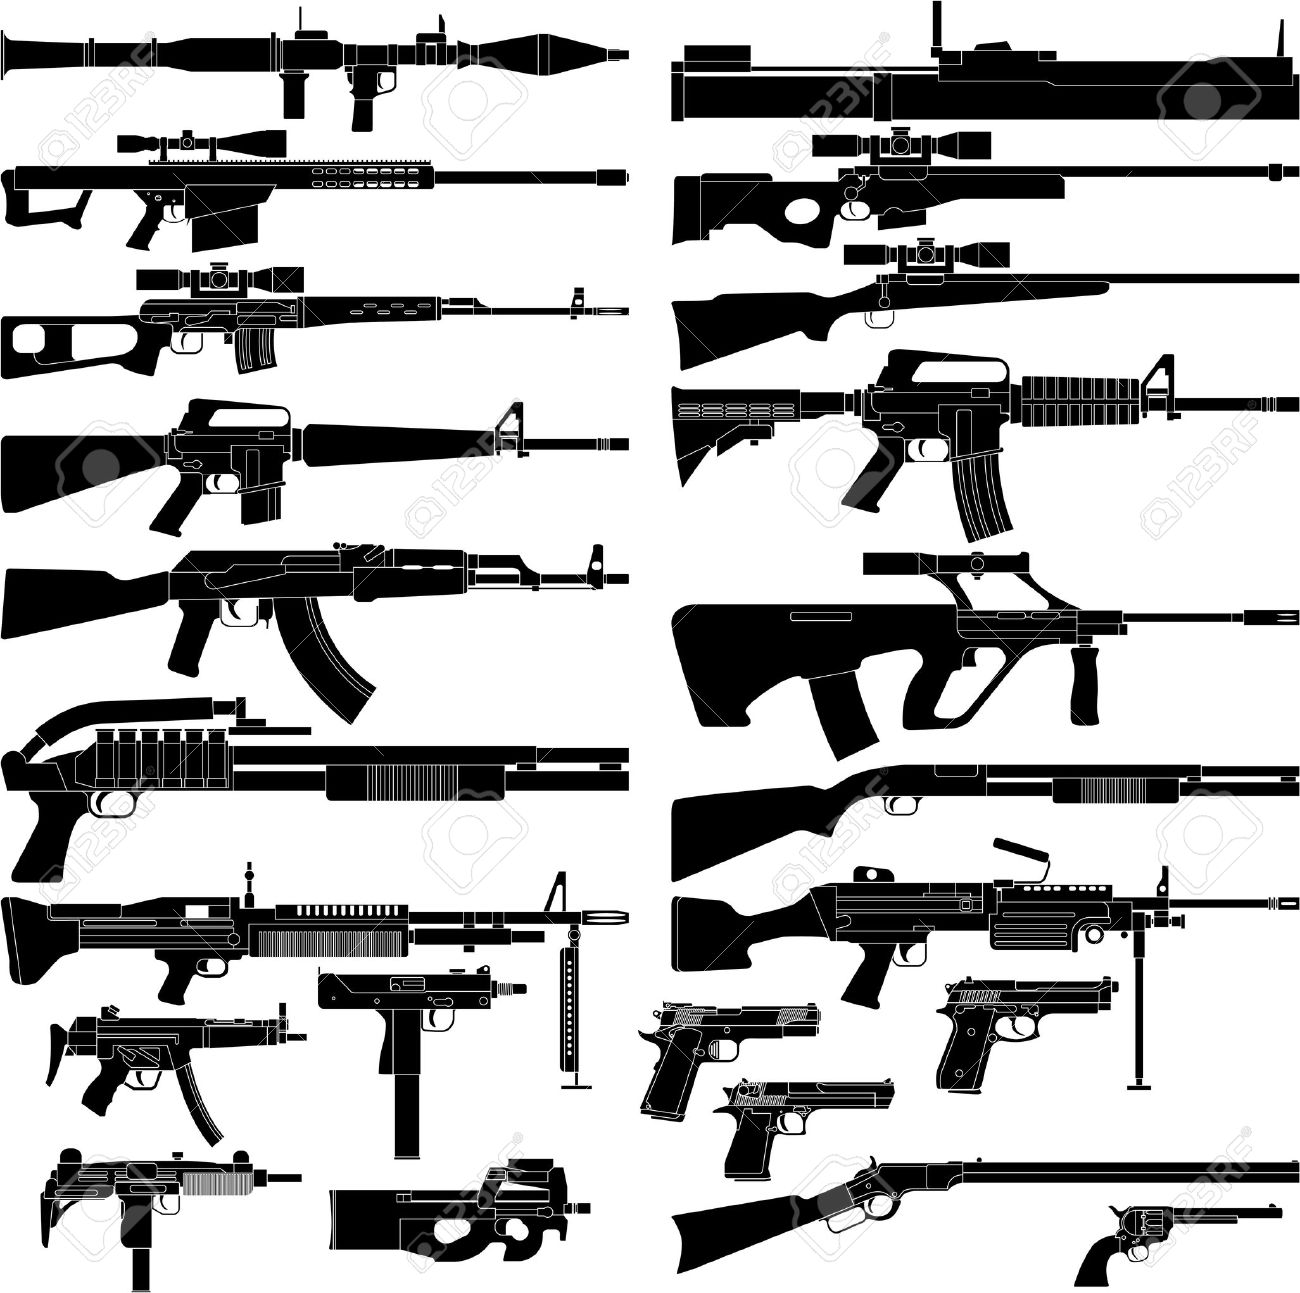 Layered vector illustration of various weapons. - 9326596